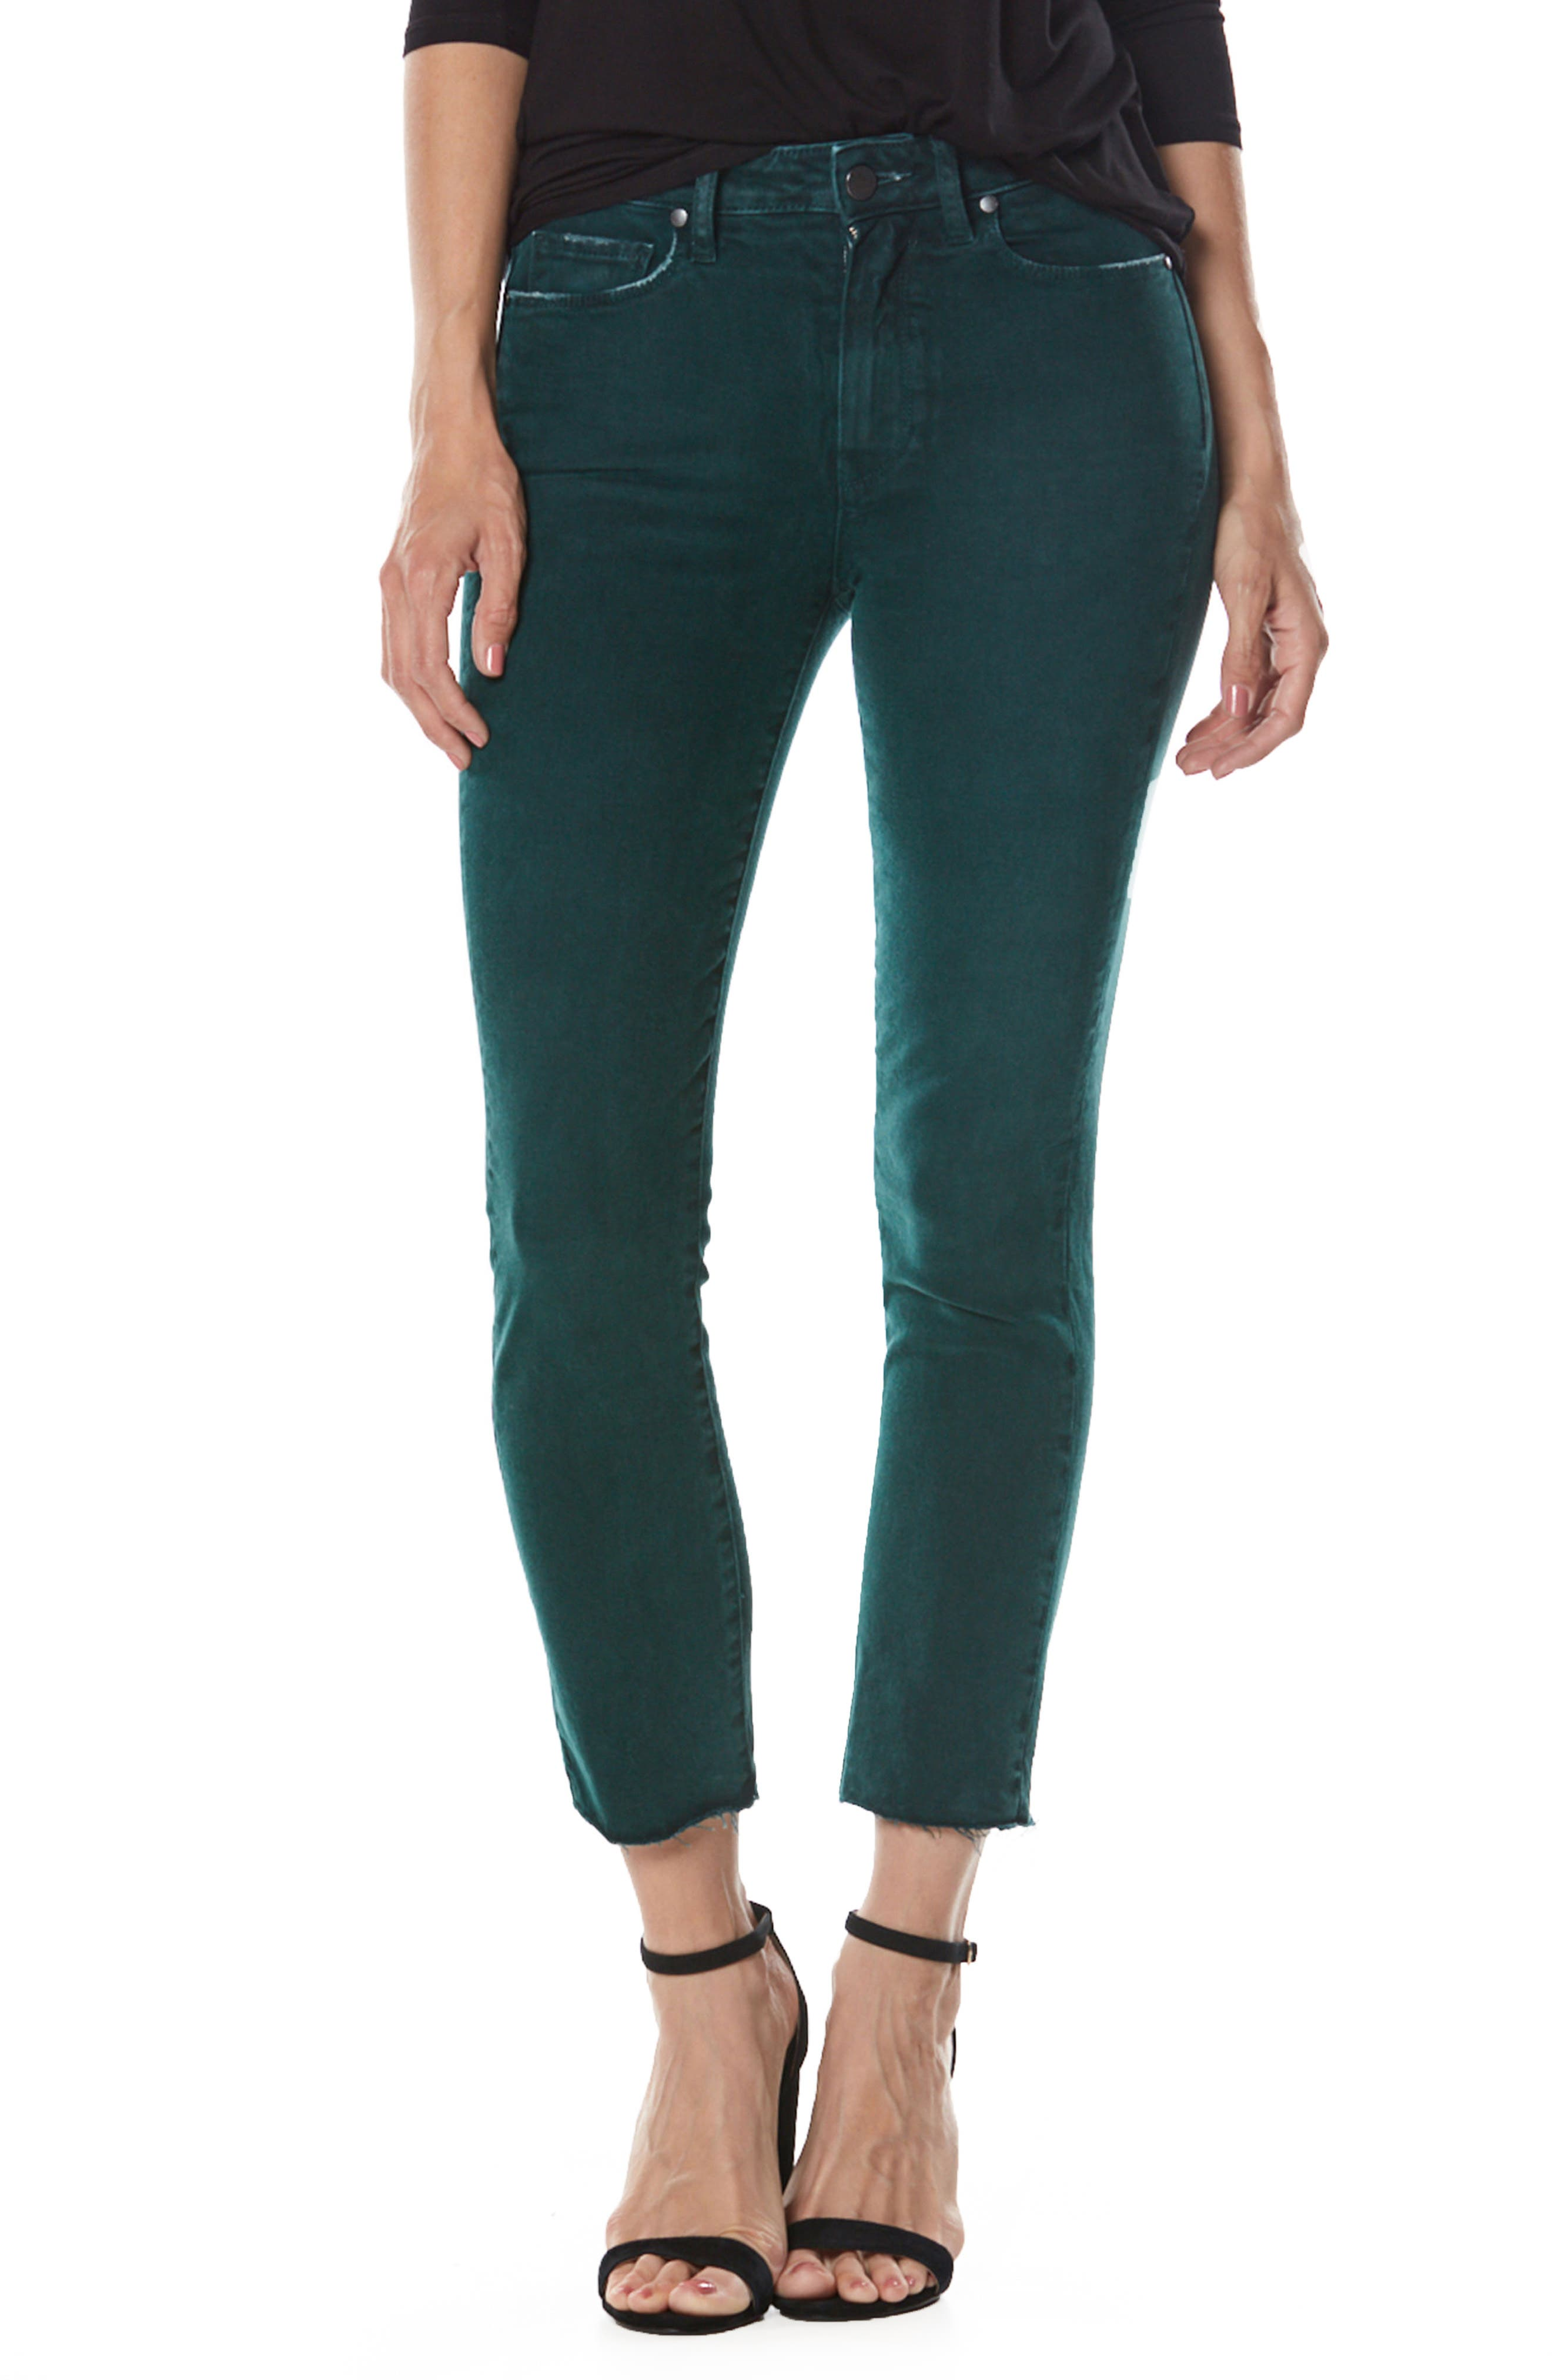 Verdugo Ankle Skinny Jeans,                             Main thumbnail 1, color,                             499